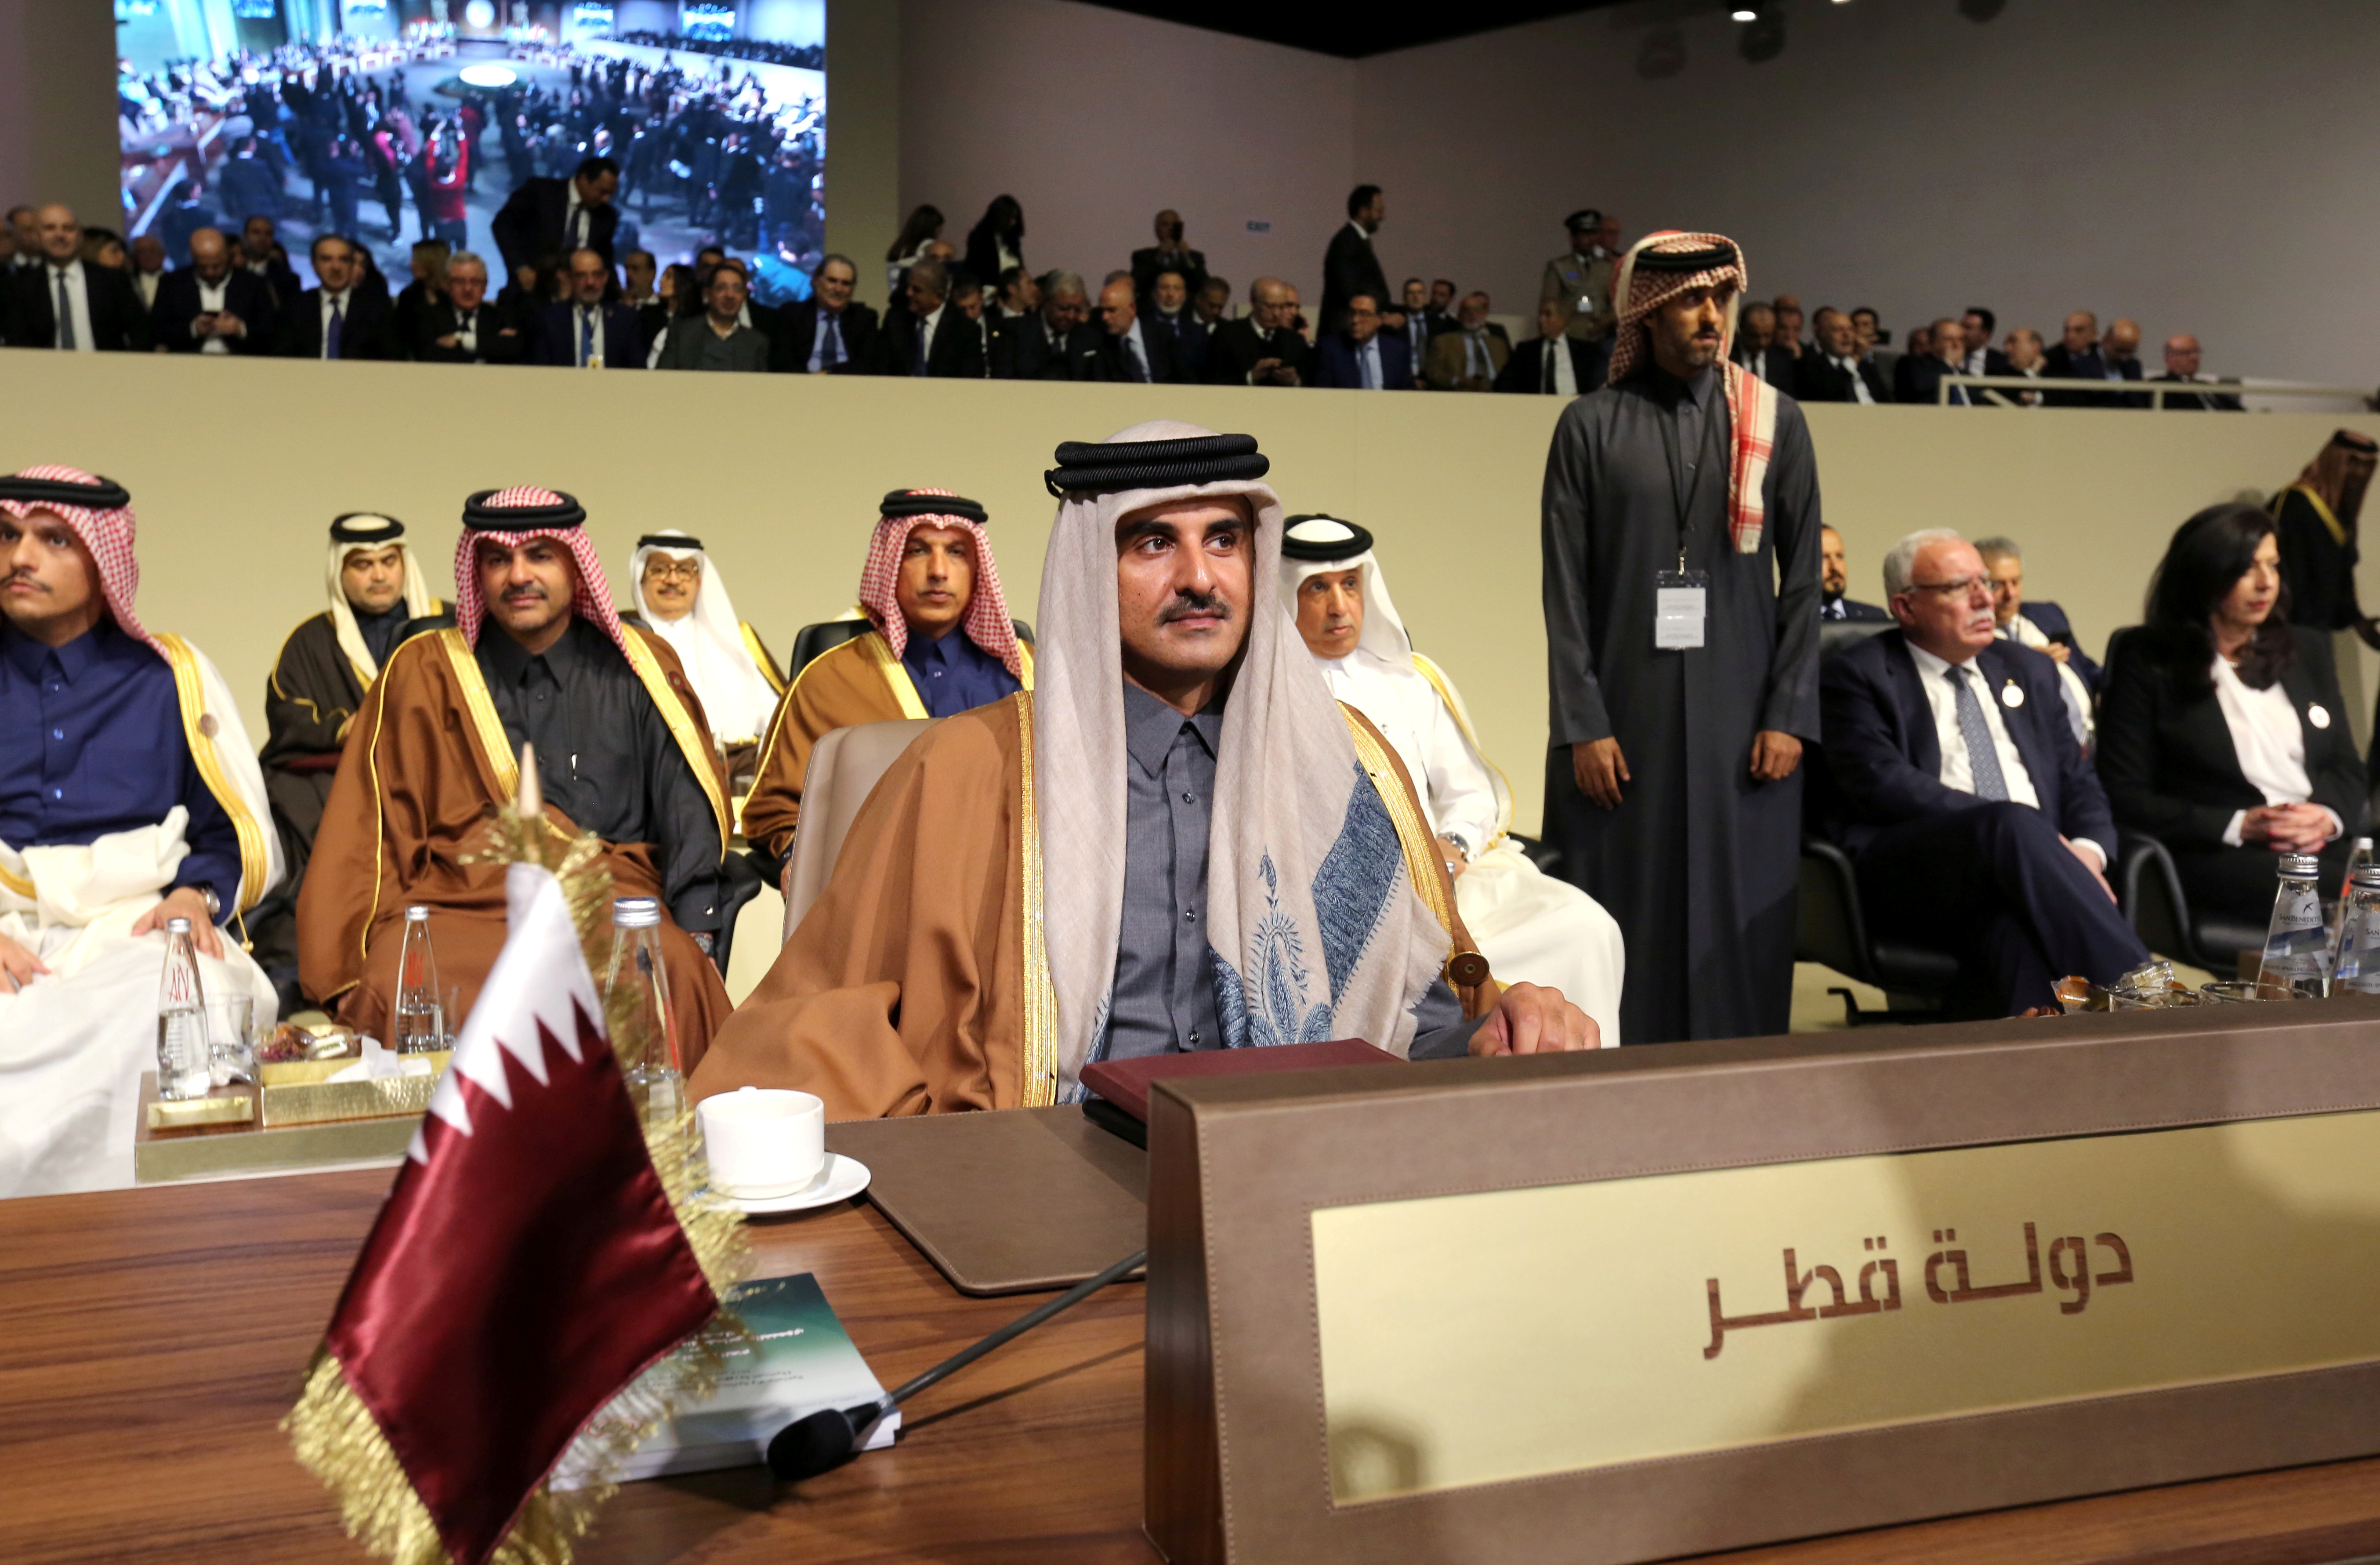 FILE PHOTO: Emir of Qatar Sheikh Tamim bin Hamad bin Khalifa Al-Thani attends the Arab Economic and Social Development summit meeting in Beirut, Lebanon January 20, 2019. REUTERS/Aziz Taher/File Photo